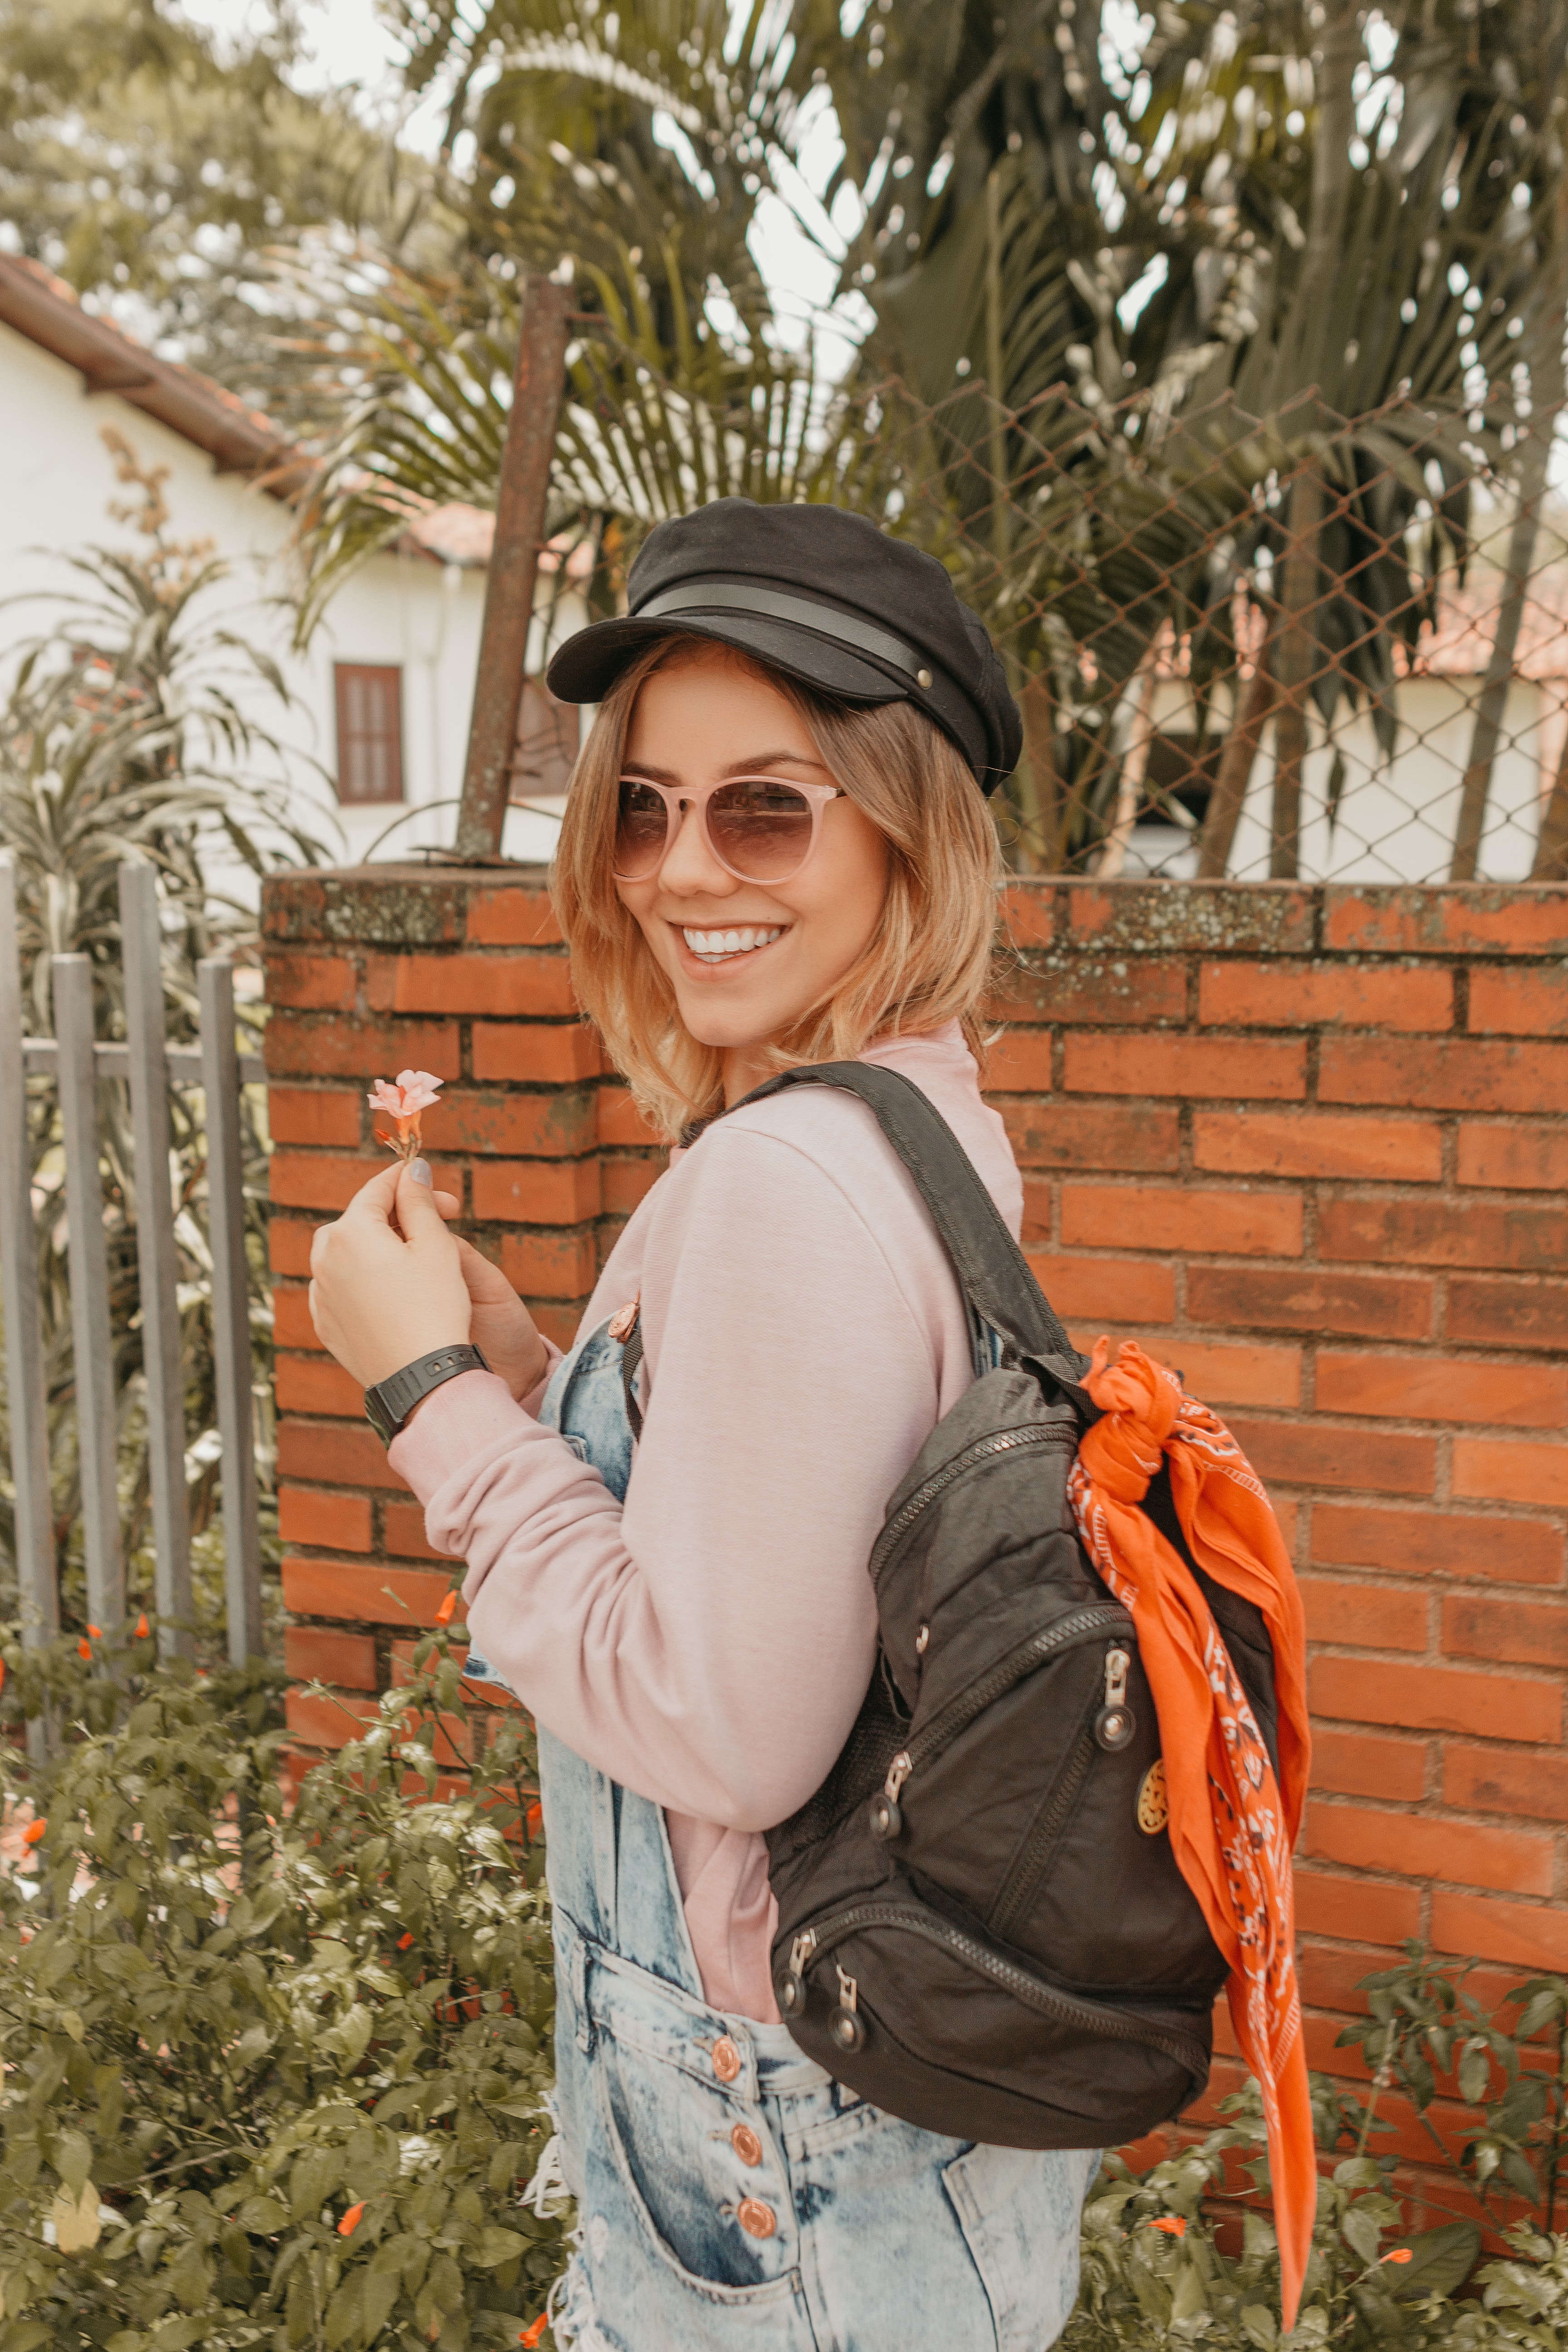 woman holding pink flower while carrying backpack